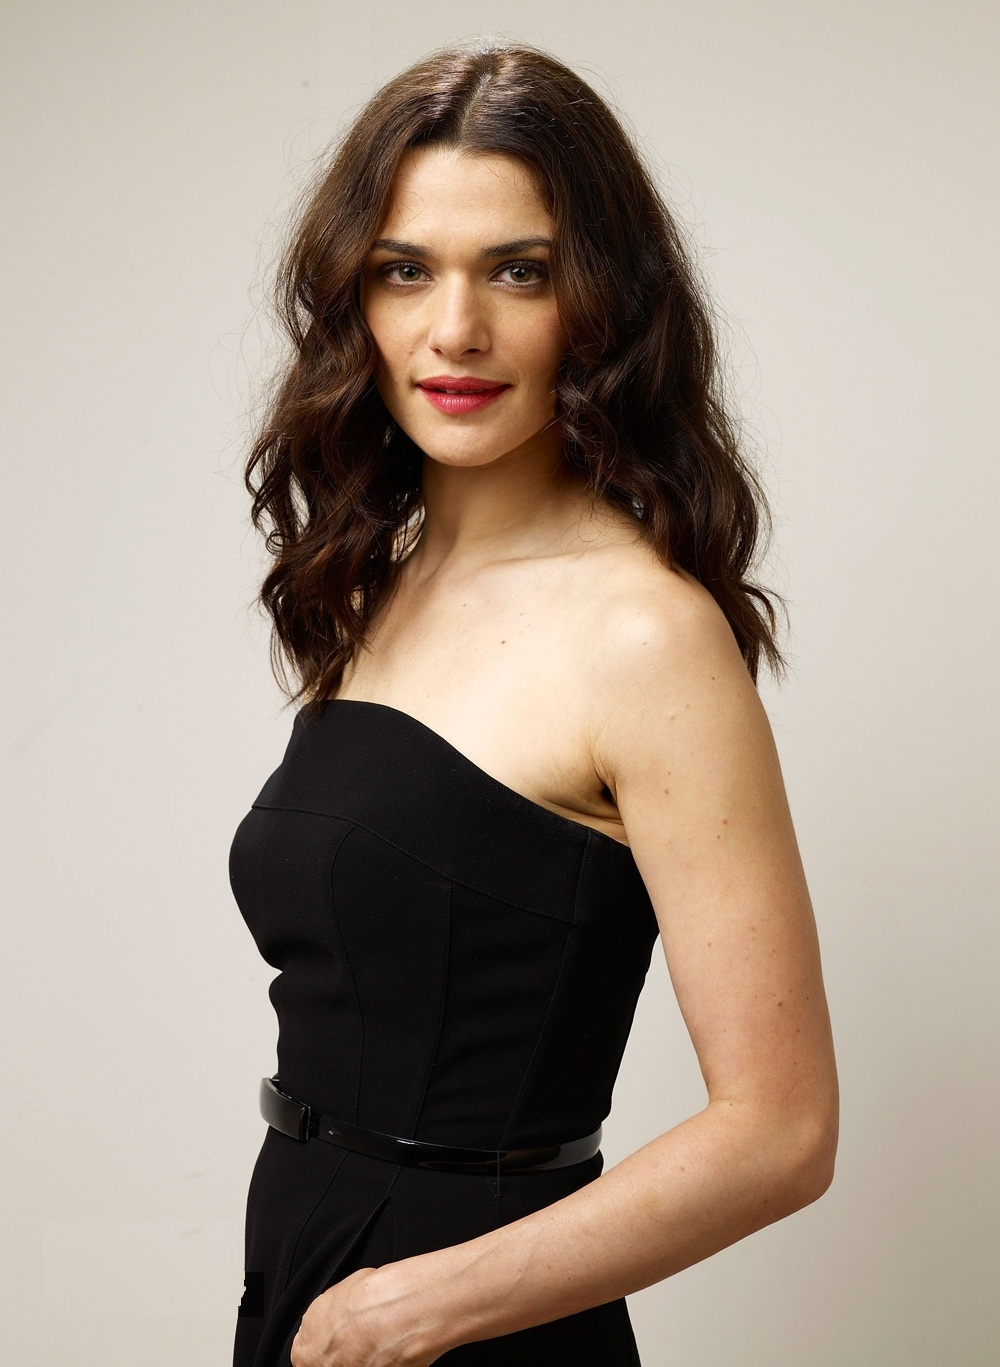 Cars 1 Full Movie >> Rachel Weisz Latest HD Wallpapers | HD Wallpapers (High Definition) | Free Background